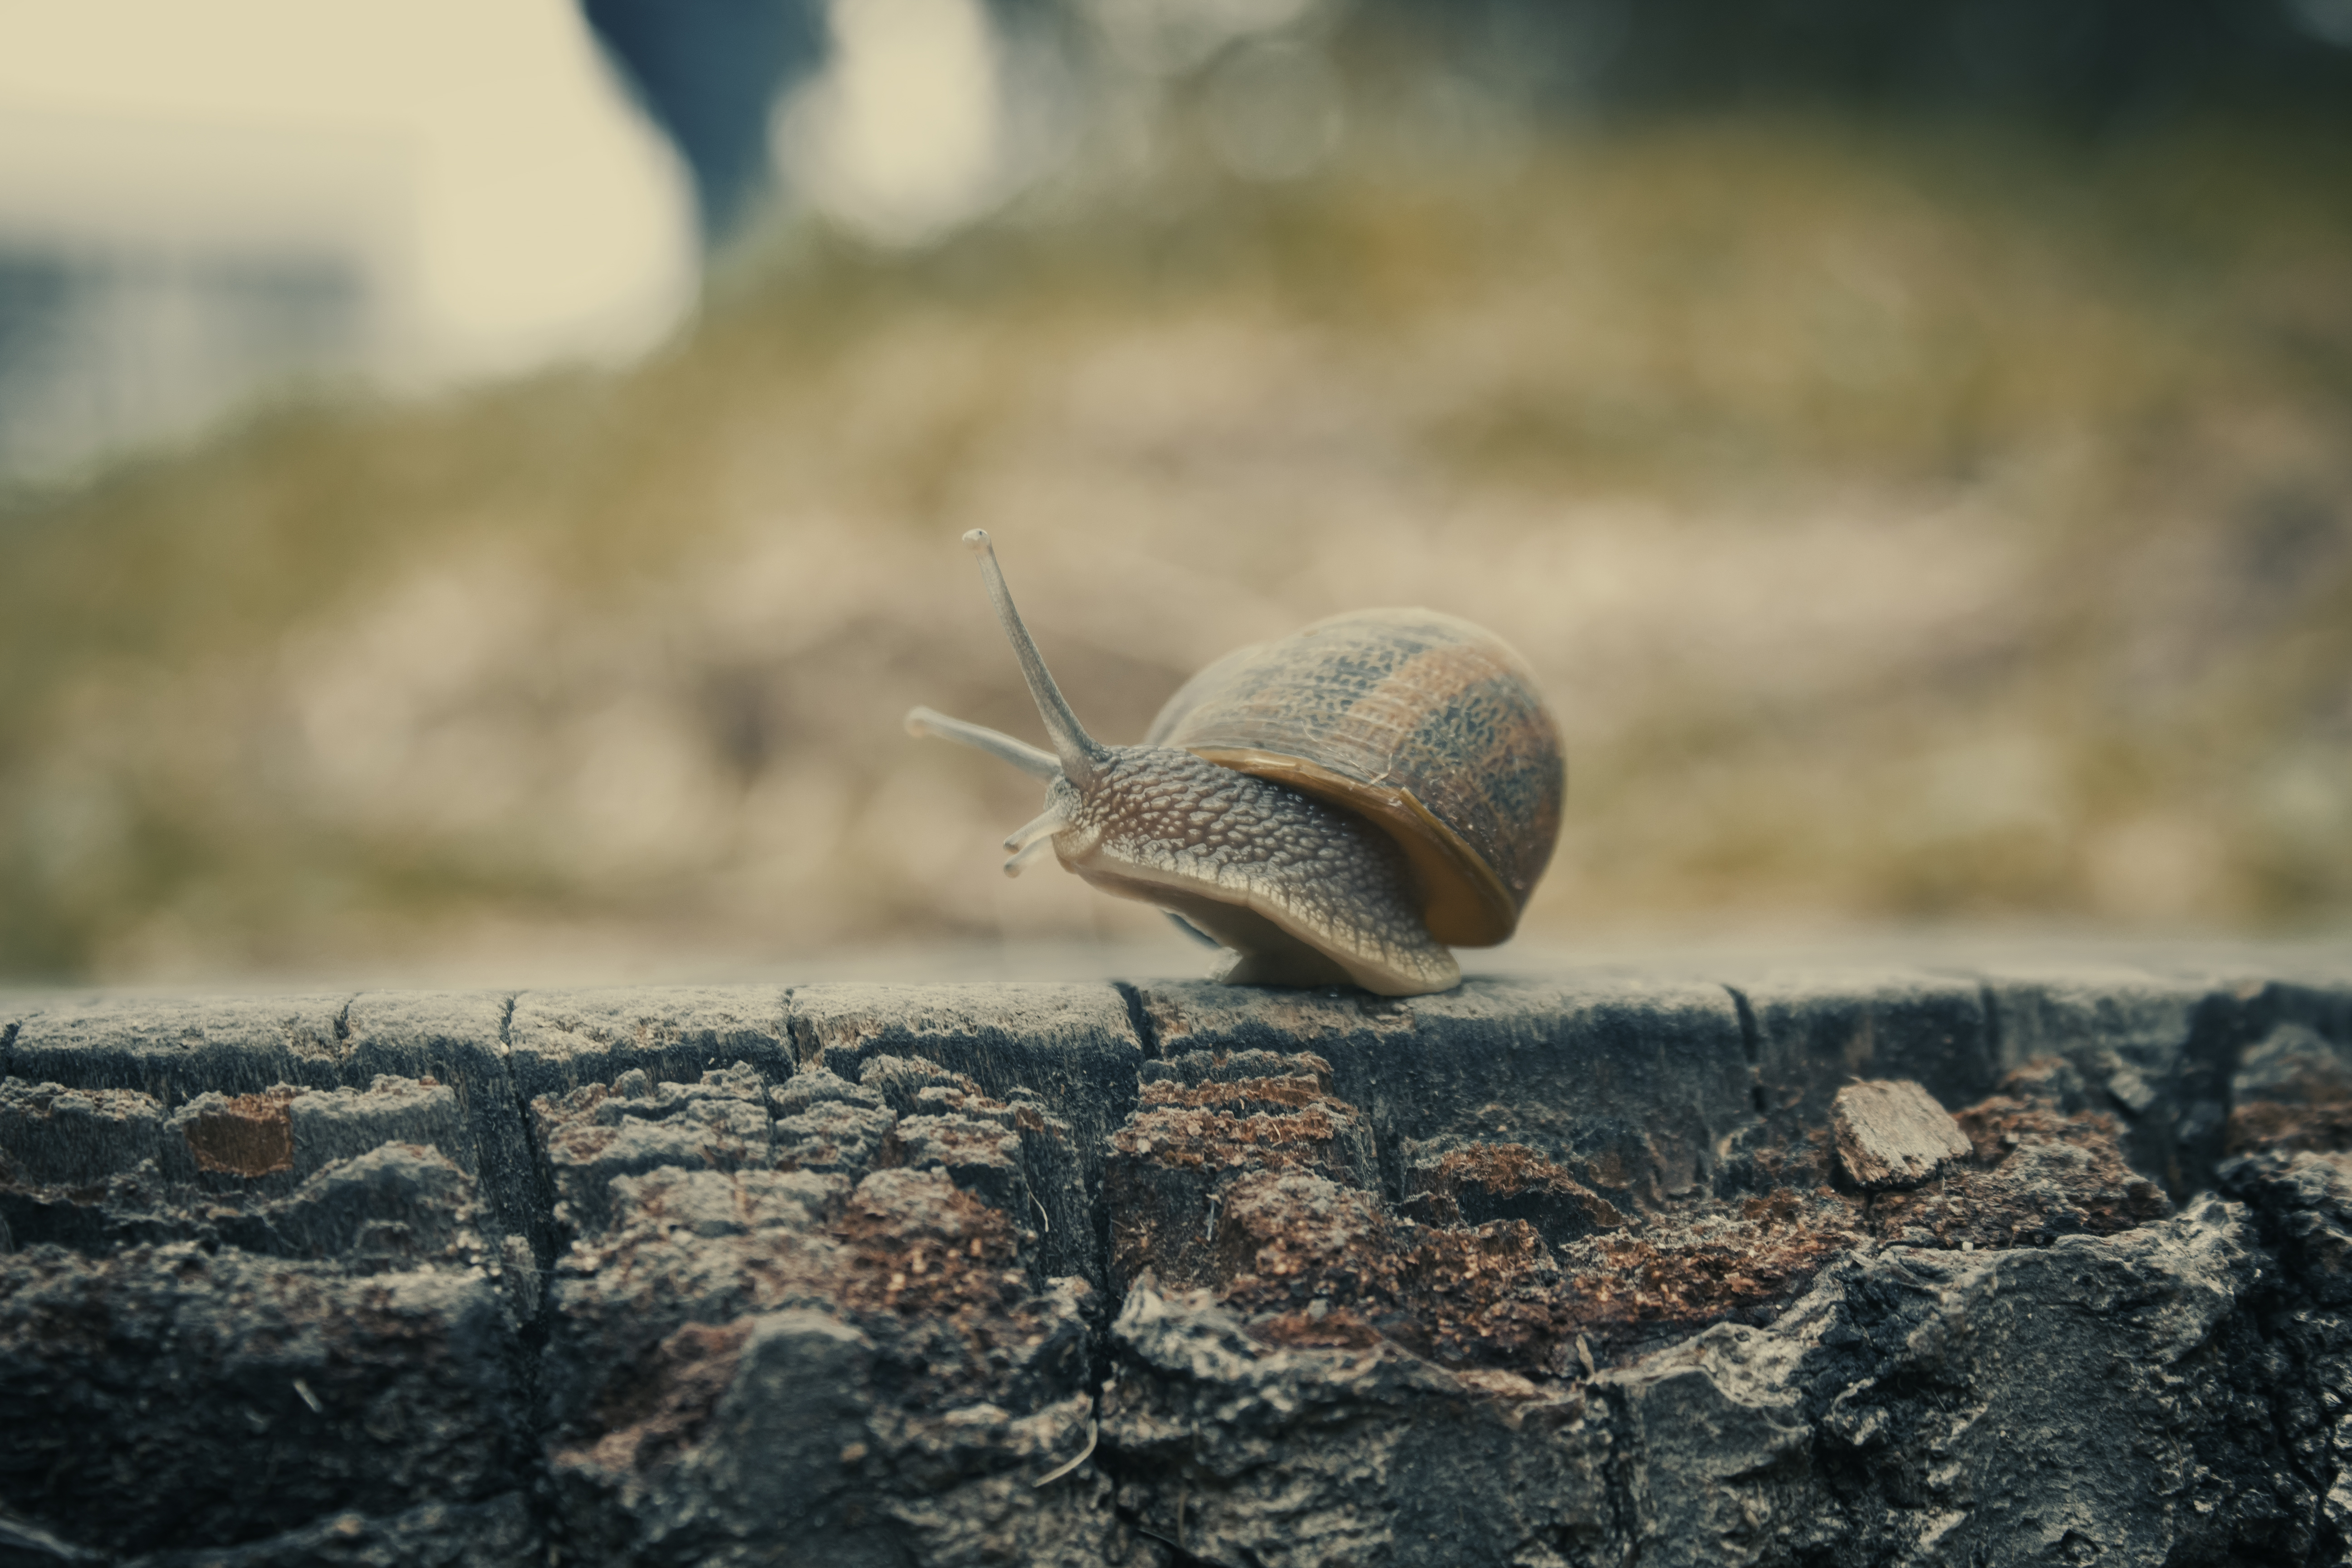 Brown Snail on Gray Concrete Surface